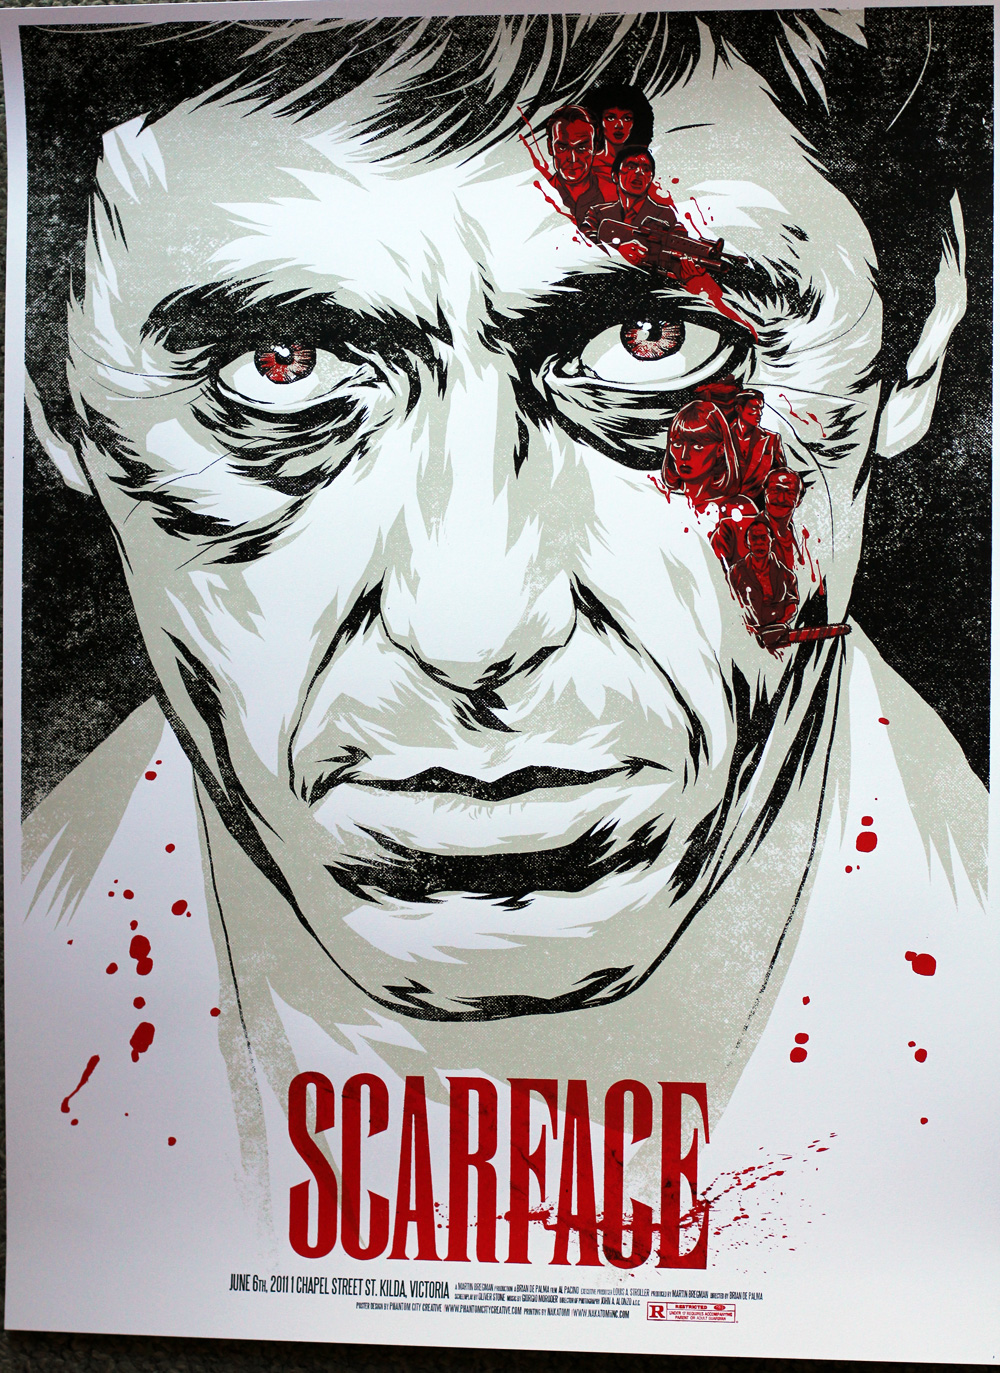 INSIDE THE ROCK POSTER FRAME BLOG: On Sale details for the Scarface ...